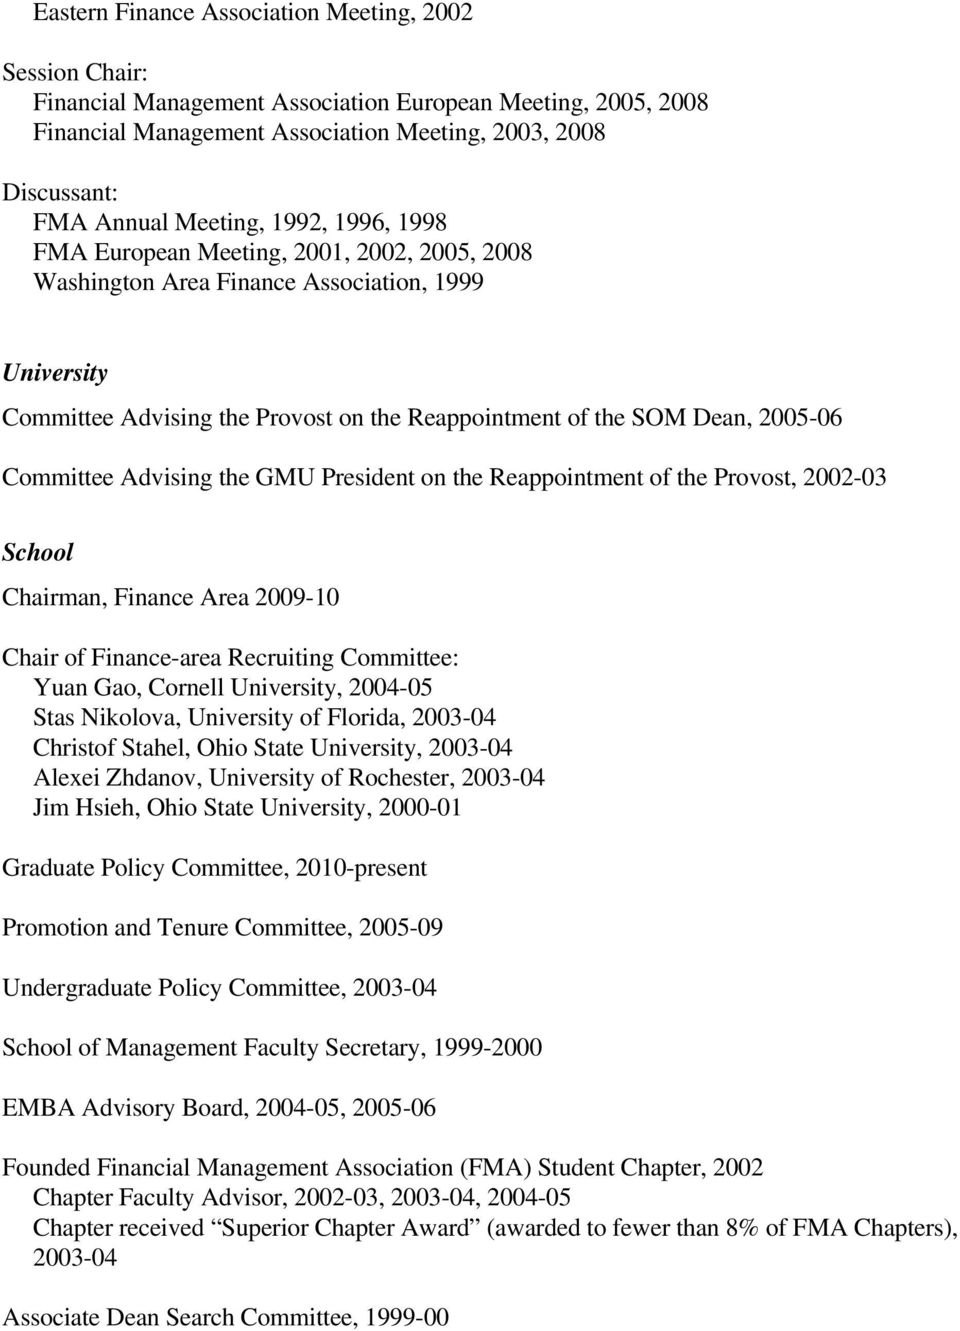 2005-06 Committee Advising the GMU President on the Reappointment of the Provost, 2002-03 School Chairman, Finance Area 2009-10 Chair of Finance-area Recruiting Committee: Yuan Gao, Cornell